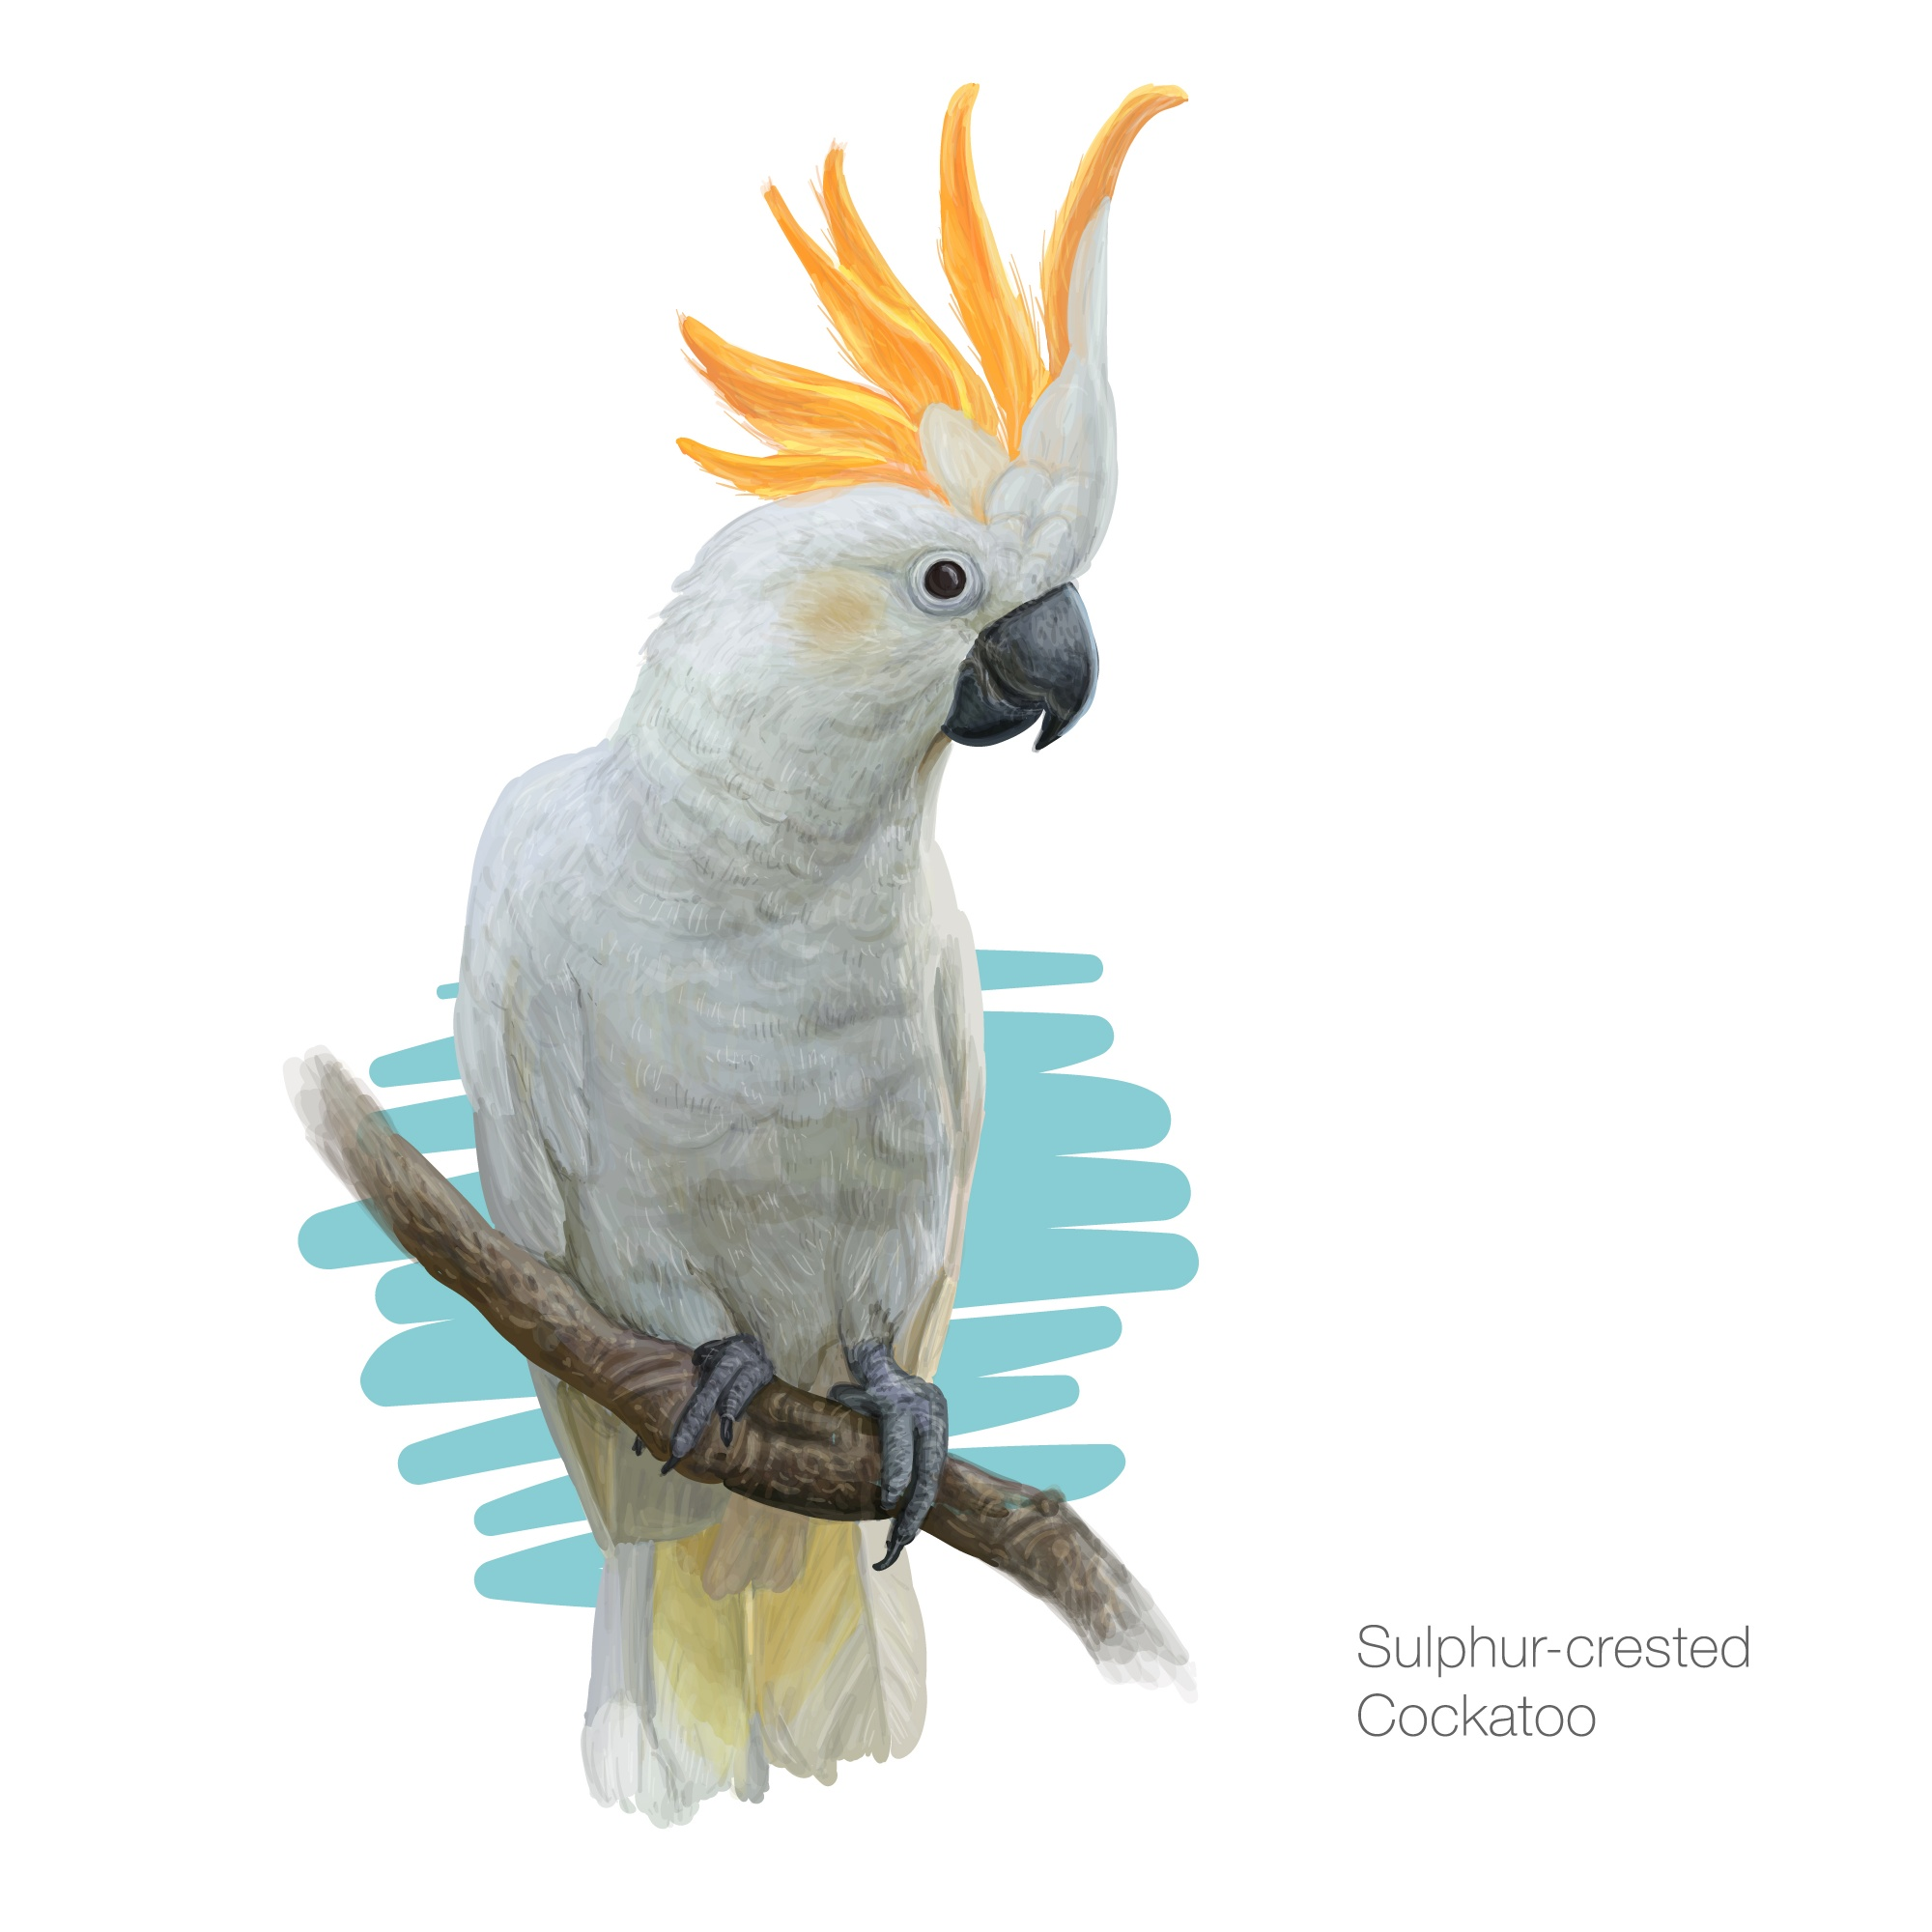 Cockatoo Sulphurcrested illustration détaillée